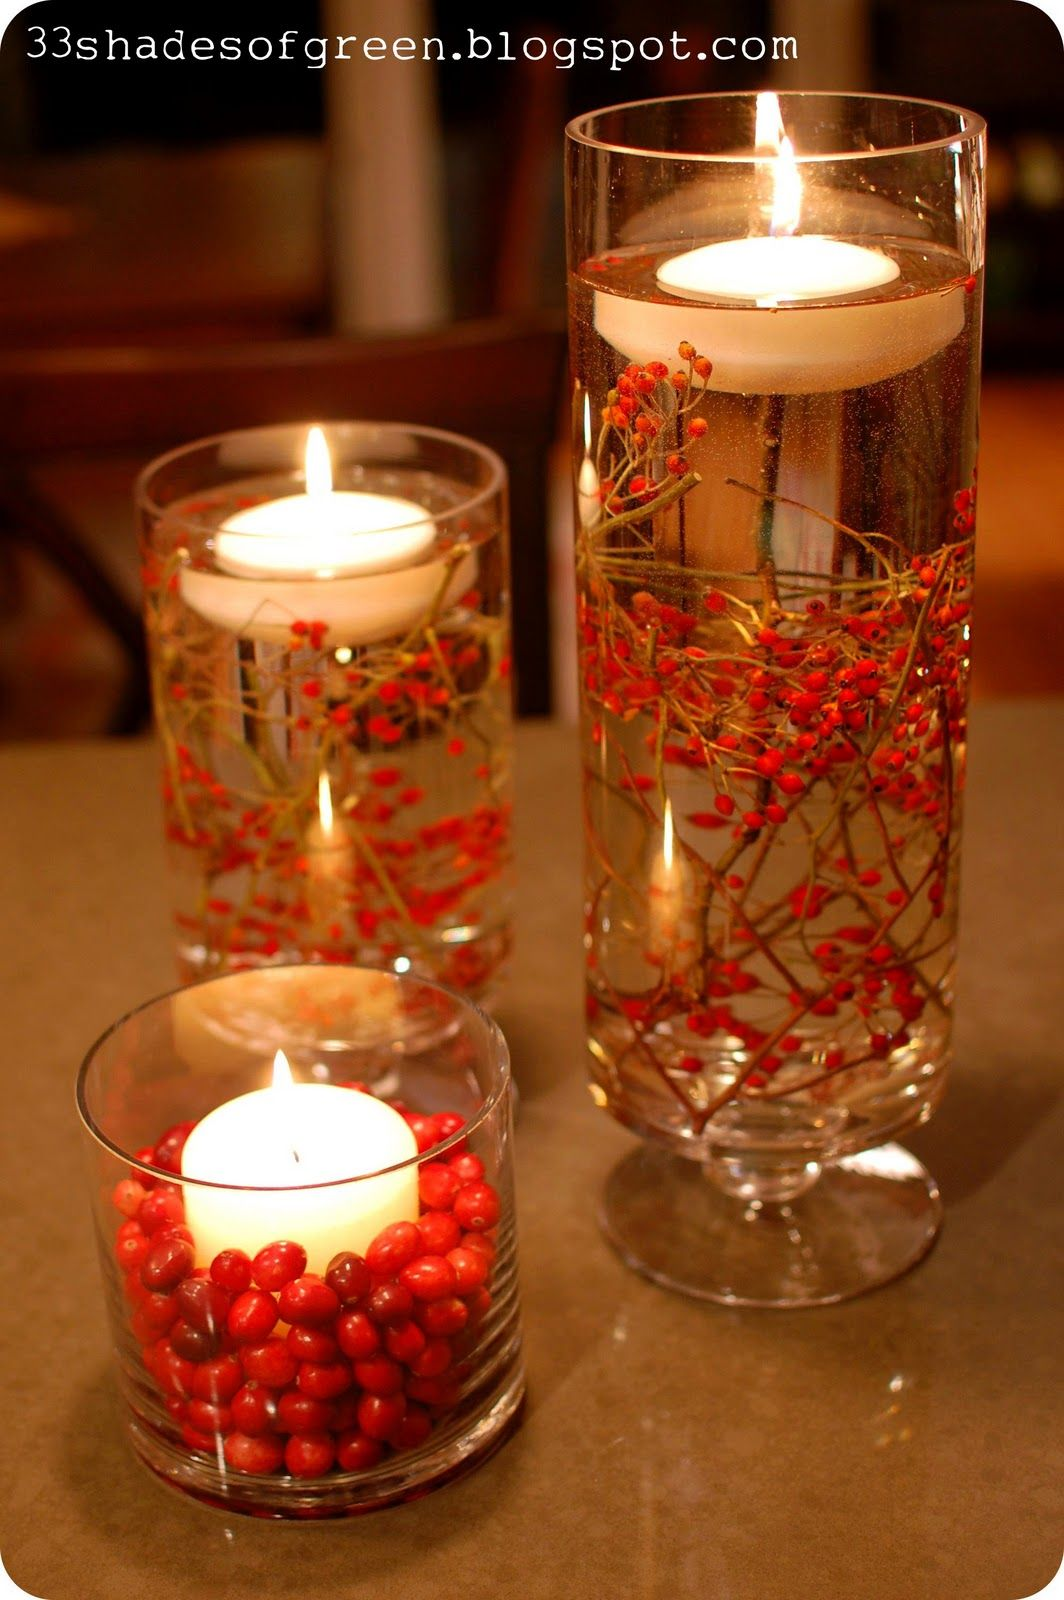 Centre pieces variation of this image with stones at bottom diy floating candle centerpiece ideas for wedding valentine christmas or any occasions reviewsmspy